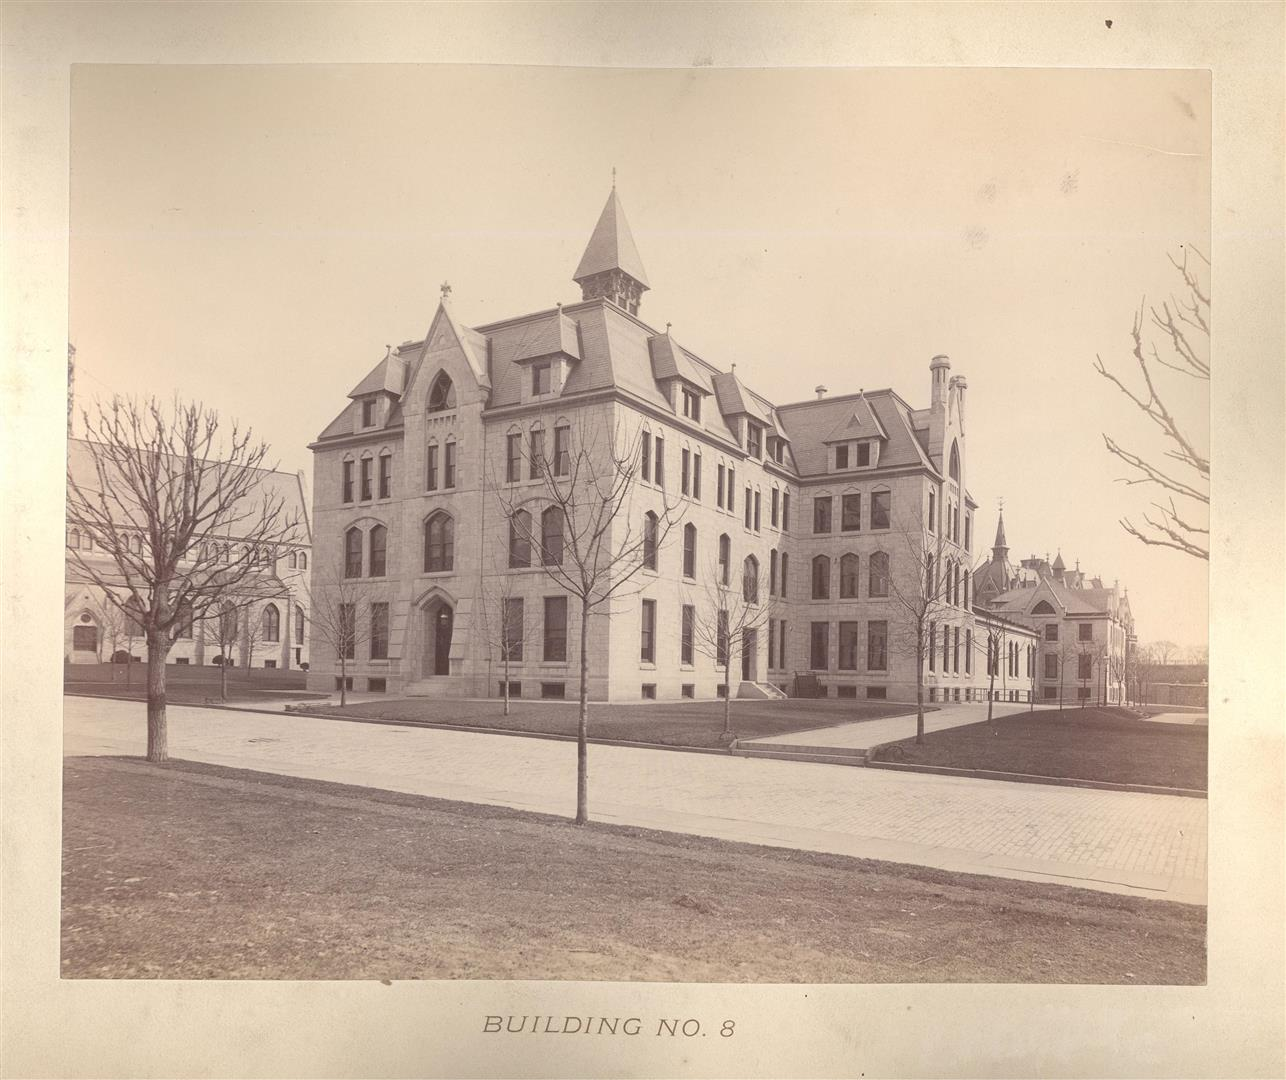 1893 photo of Building #8, later known as Lafayette Hall.